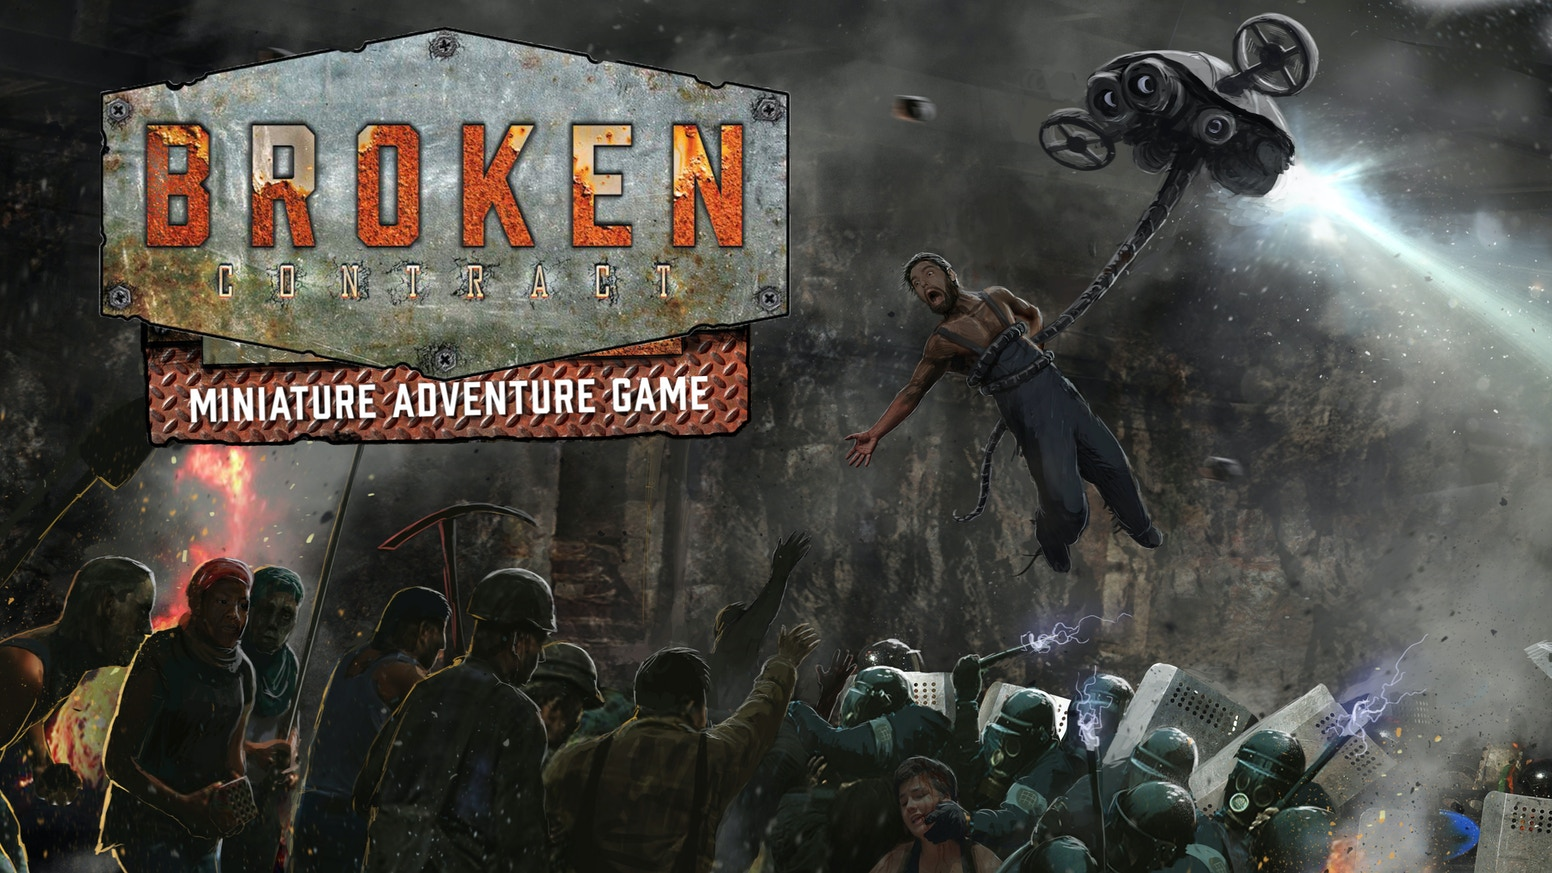 Broken Contract is a sci-fi, action/adventure, miniature game of worker insurrection in a dystopian future for 2+ players.